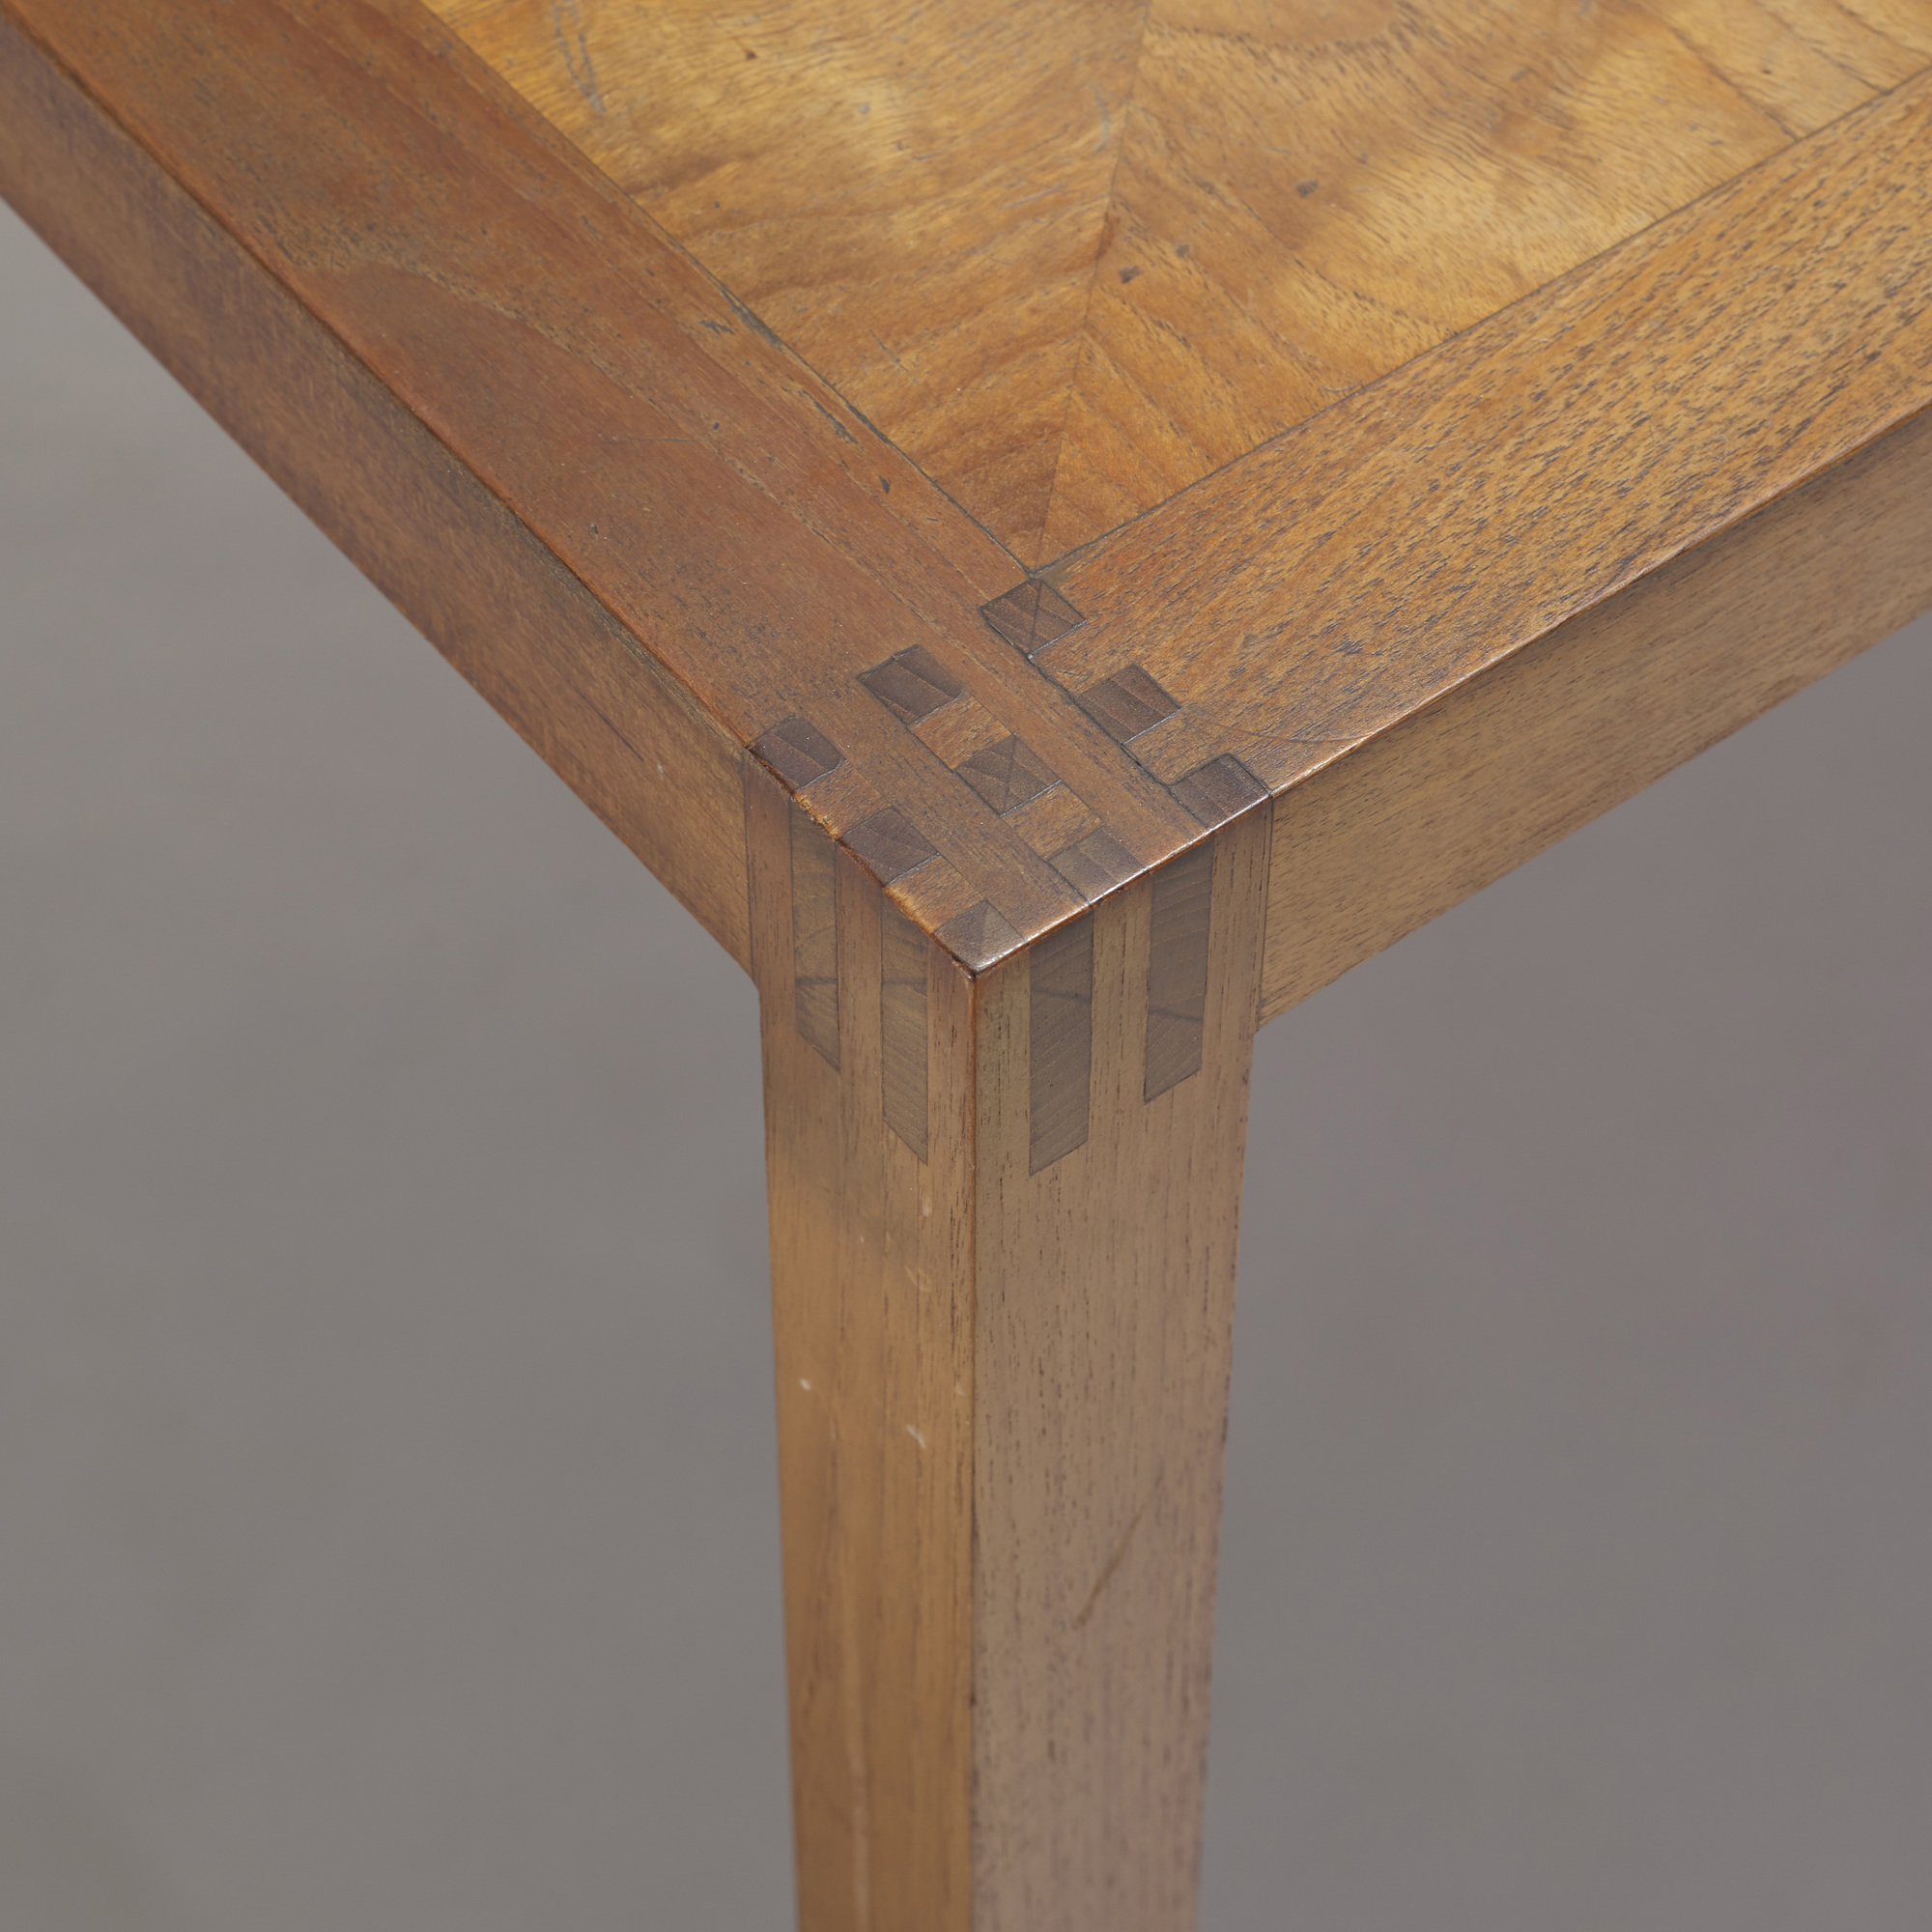 155: Don Powell and Robert Kleinschmidt / dining table from 860 Lake Shore Drive, Chicago (4 of 5)